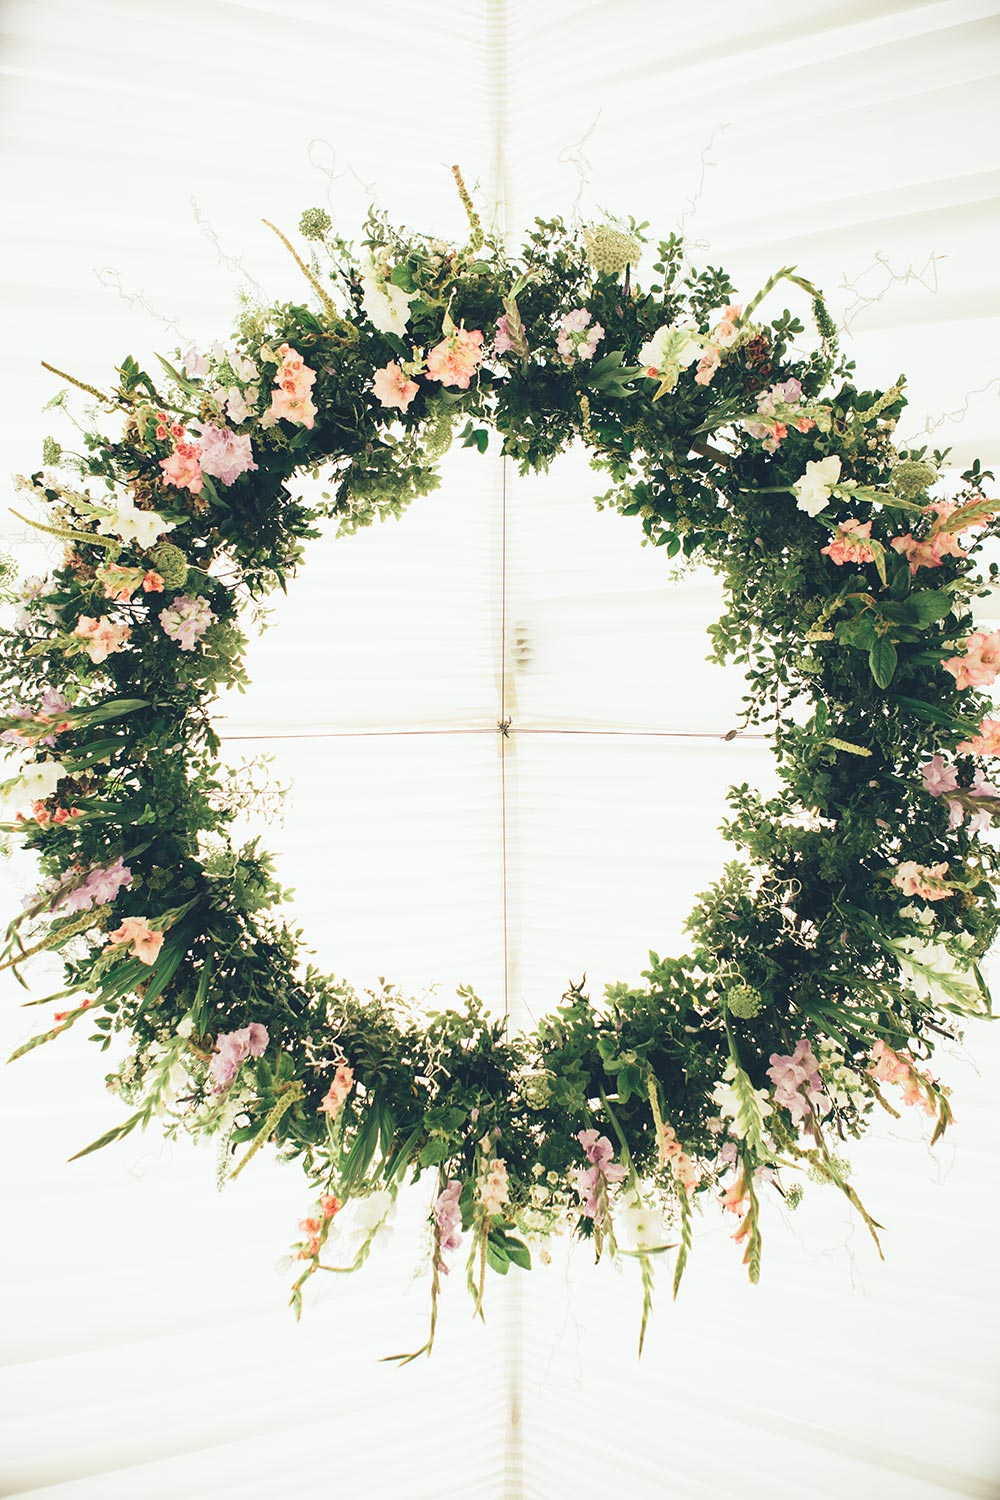 3-wilde-thyme-wedding-flowers-ceiling-decor-hoop-hanging.jpg